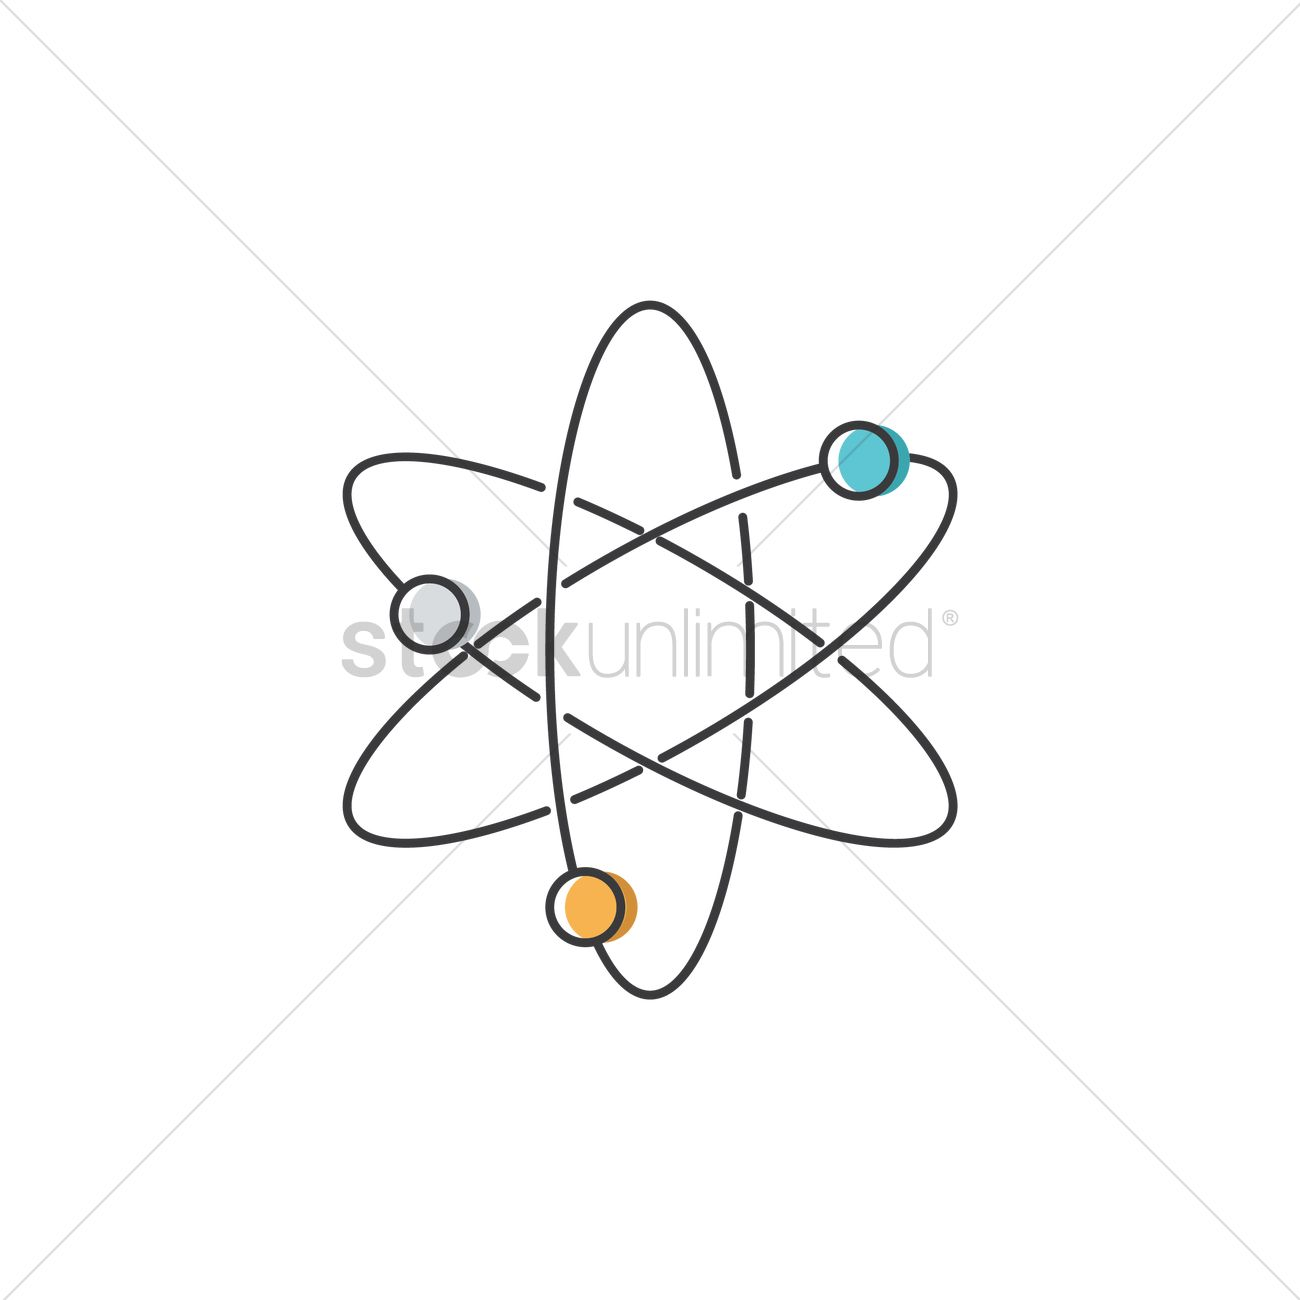 Atom structure vector image 1873183 stockunlimited atom structure vector graphic ccuart Images